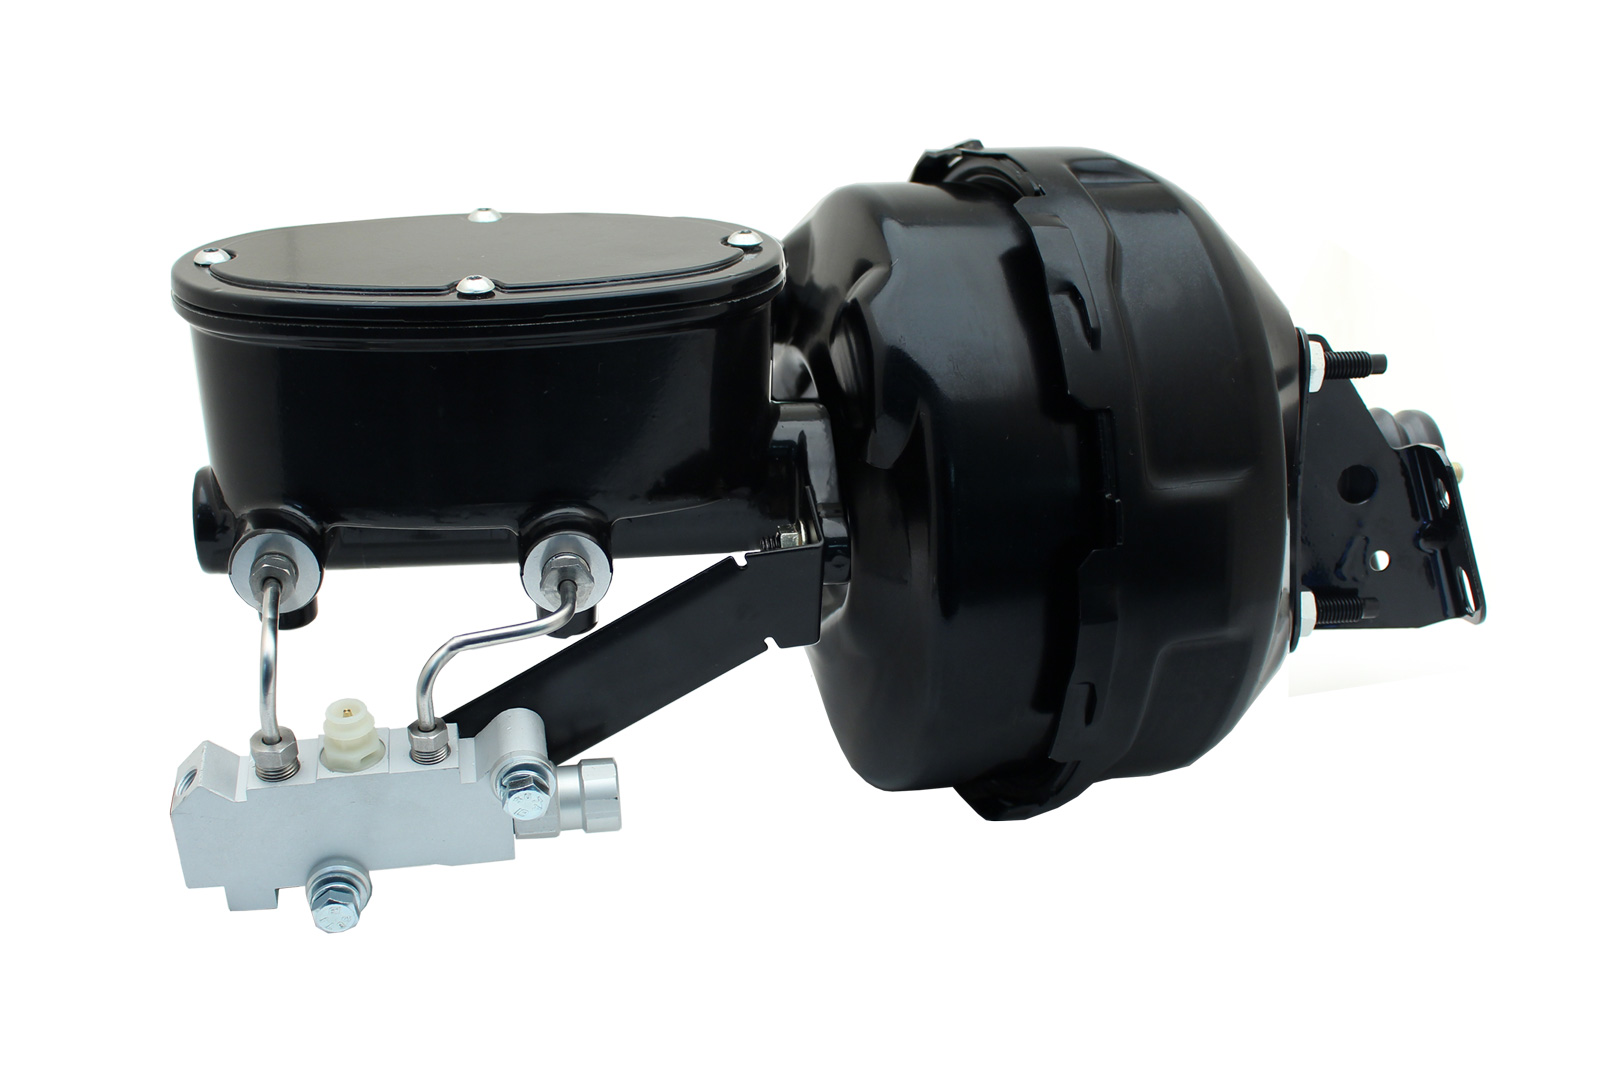 9 Dual Power Conversion W/ Wilwood Style Oval Master Cylinder Kit For GM 1964-1972 GM A Body Cars (Disc/ Disc)